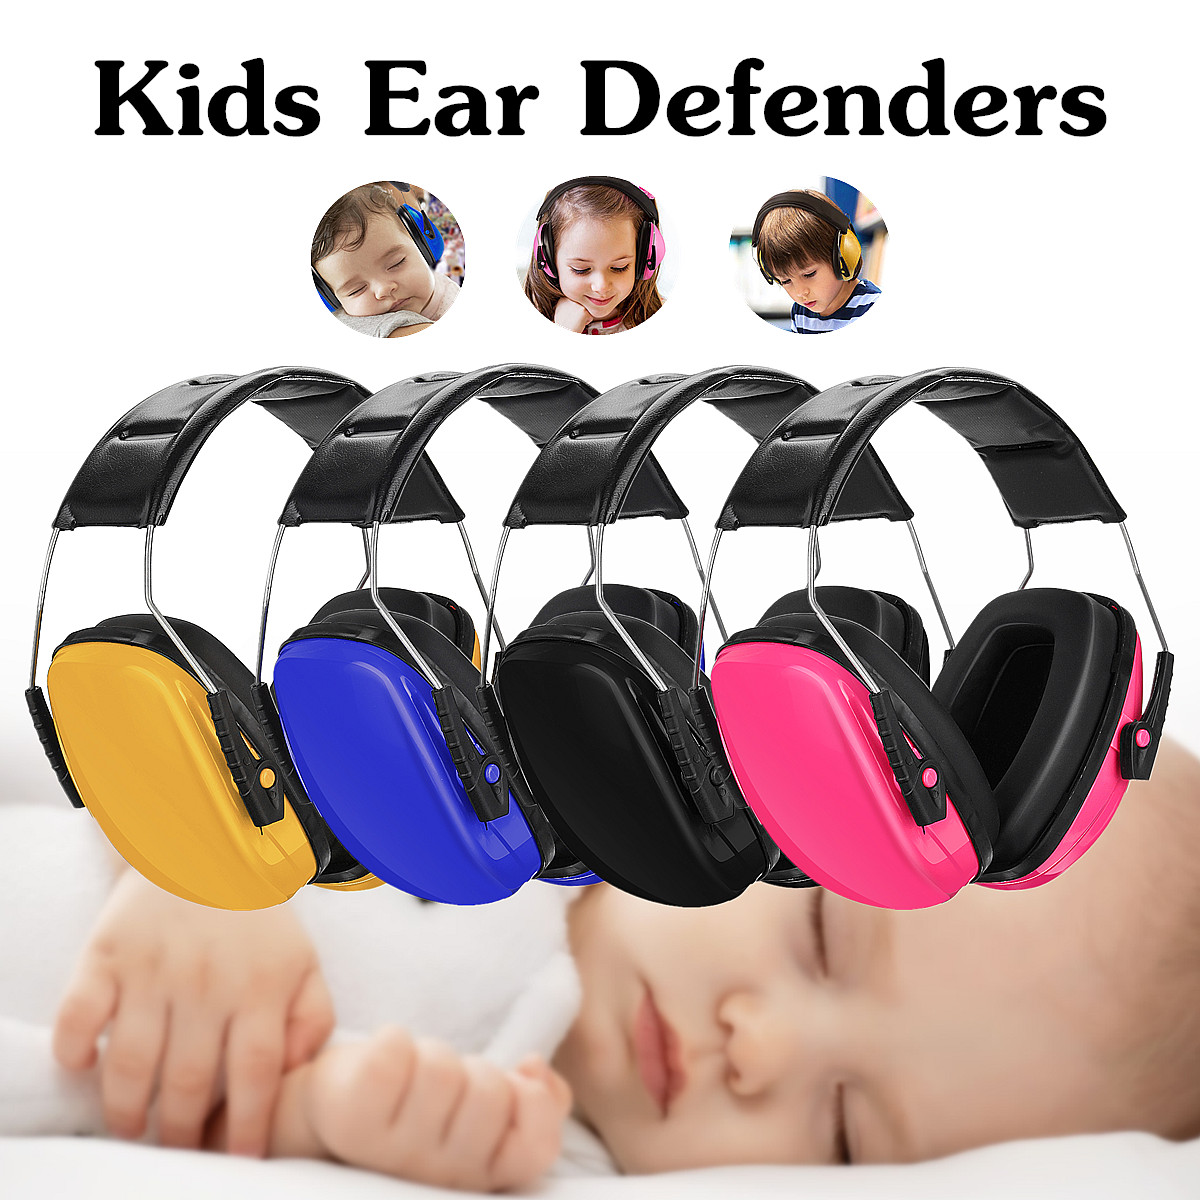 Kids Child Baby Earmuffs Hearing Protection Ear Defenders Noise Reduction Safety PVC+Sponge Yellow/Blue/Pink/Black AdjustableKids Child Baby Earmuffs Hearing Protection Ear Defenders Noise Reduction Safety PVC+Sponge Yellow/Blue/Pink/Black Adjustable